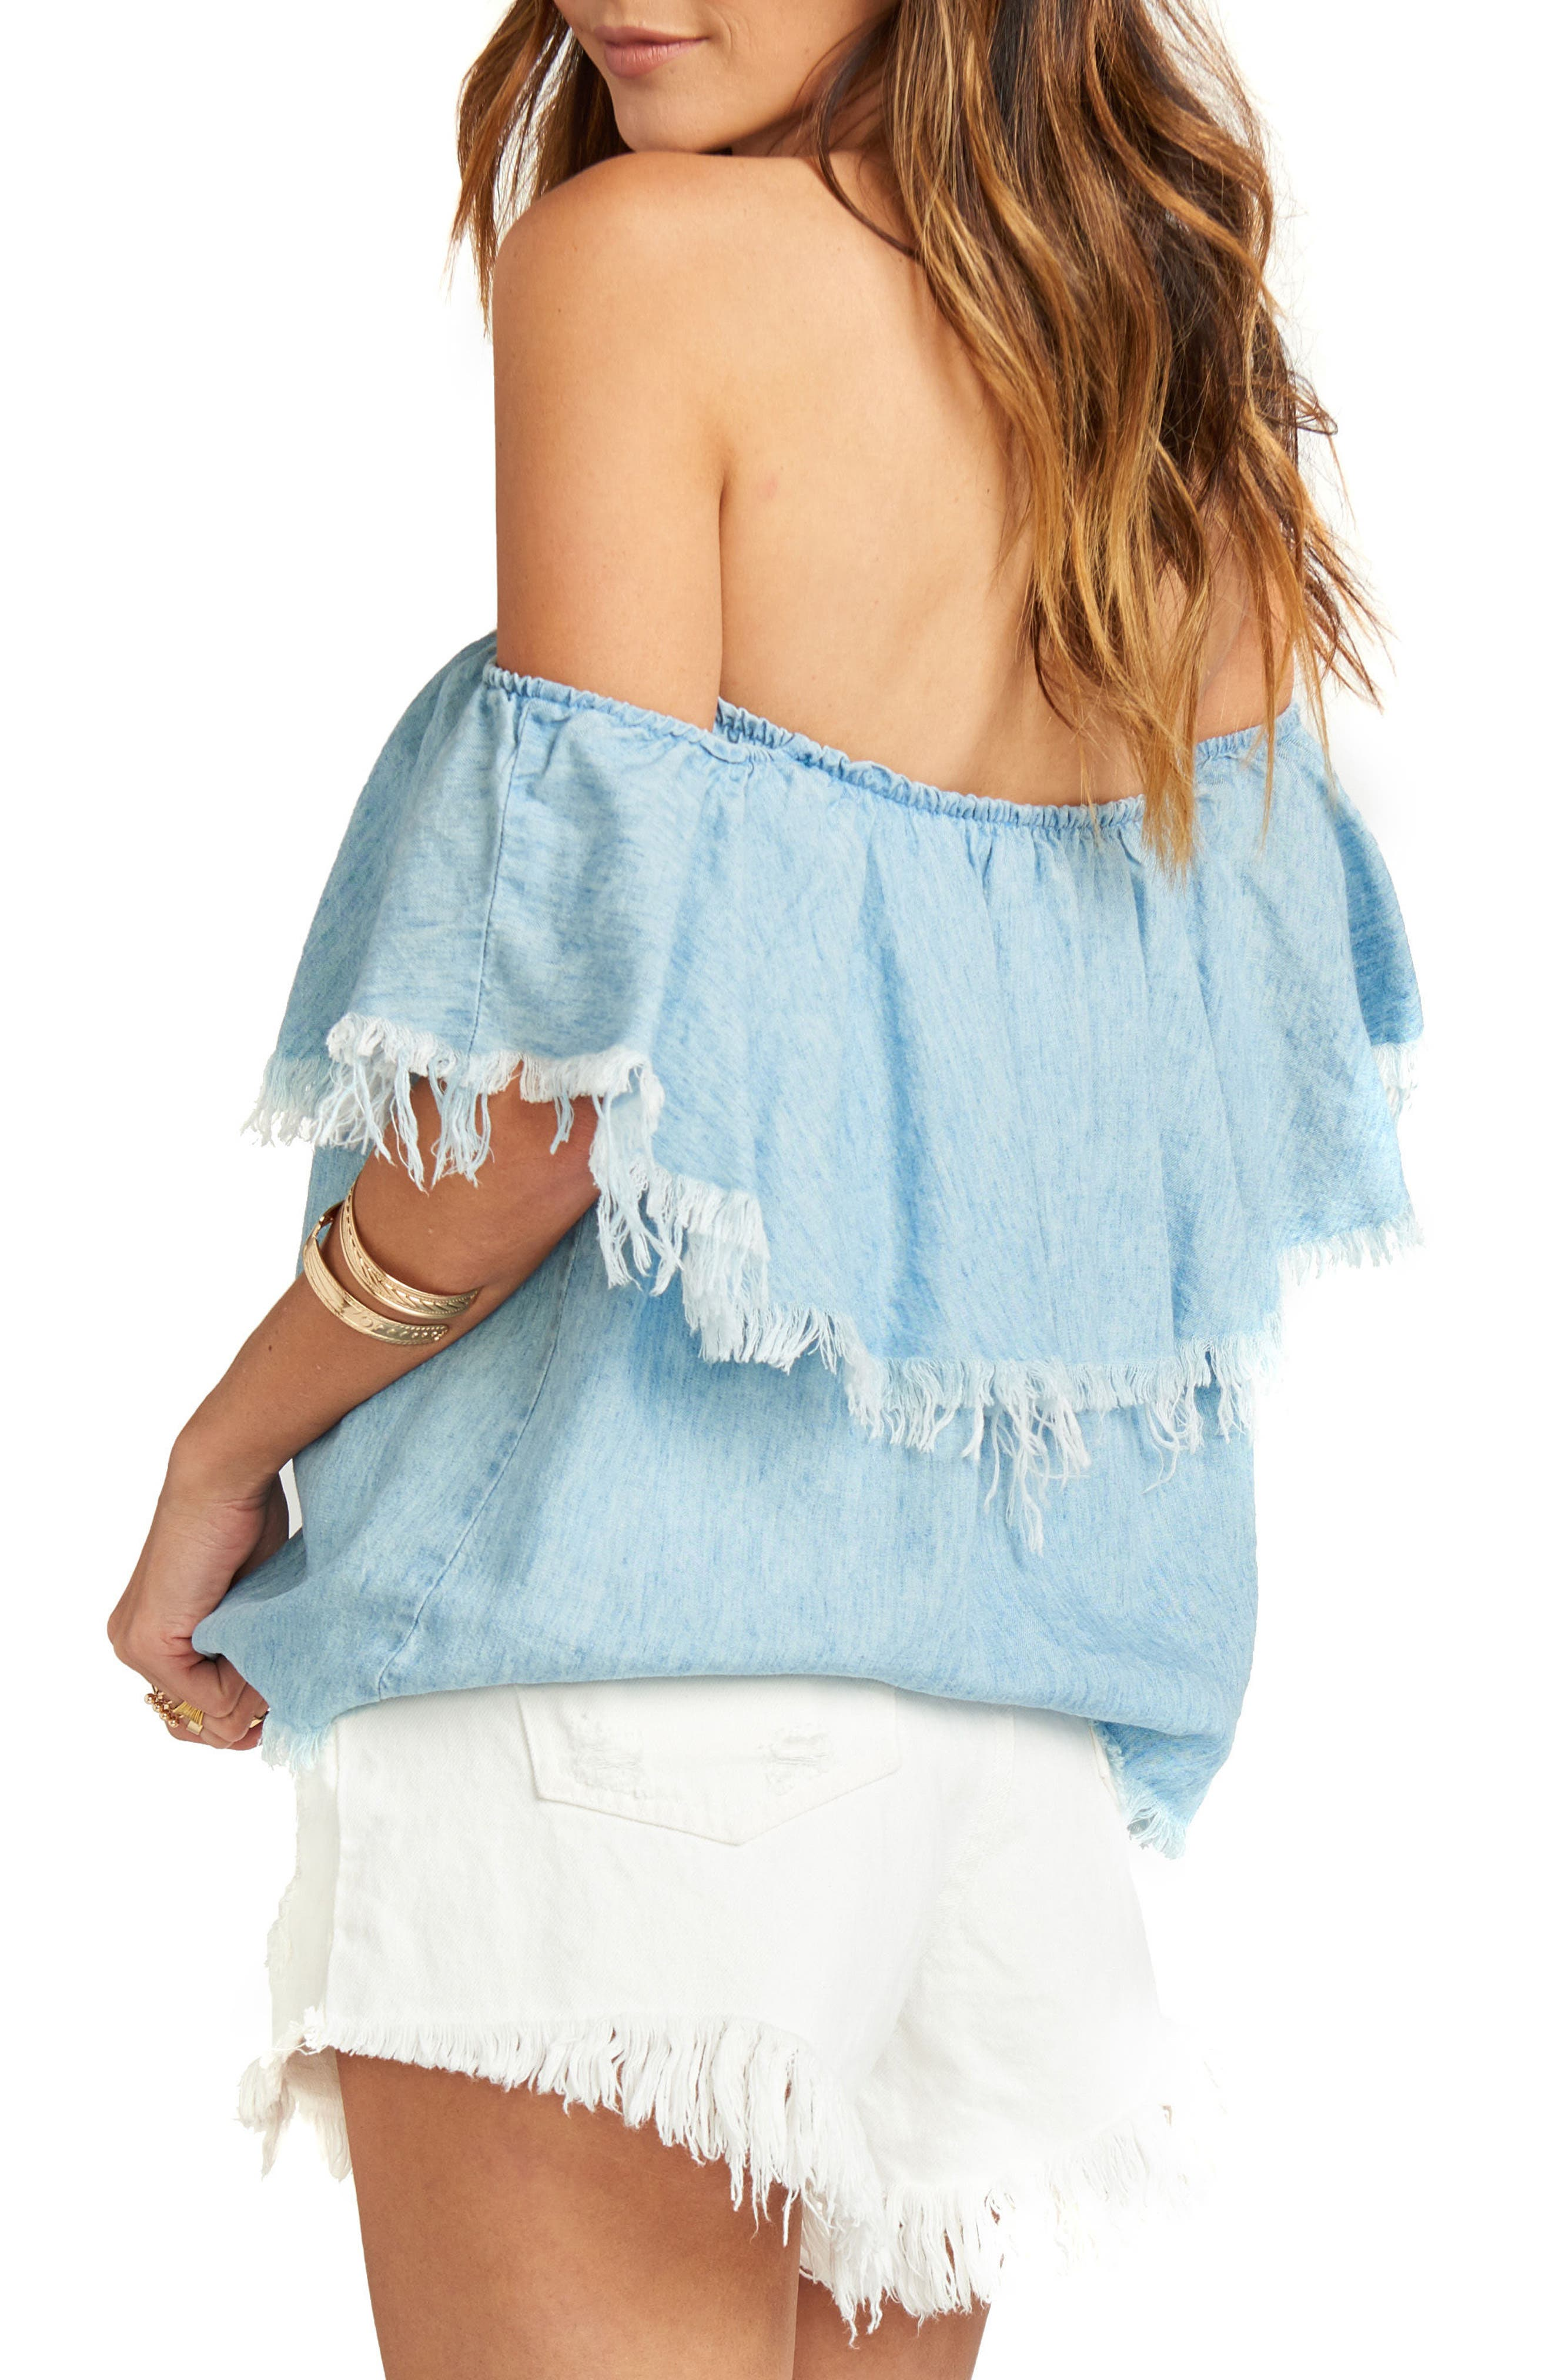 Chiquita Off the Shoulder Top,                             Alternate thumbnail 3, color,                             Light Chambray